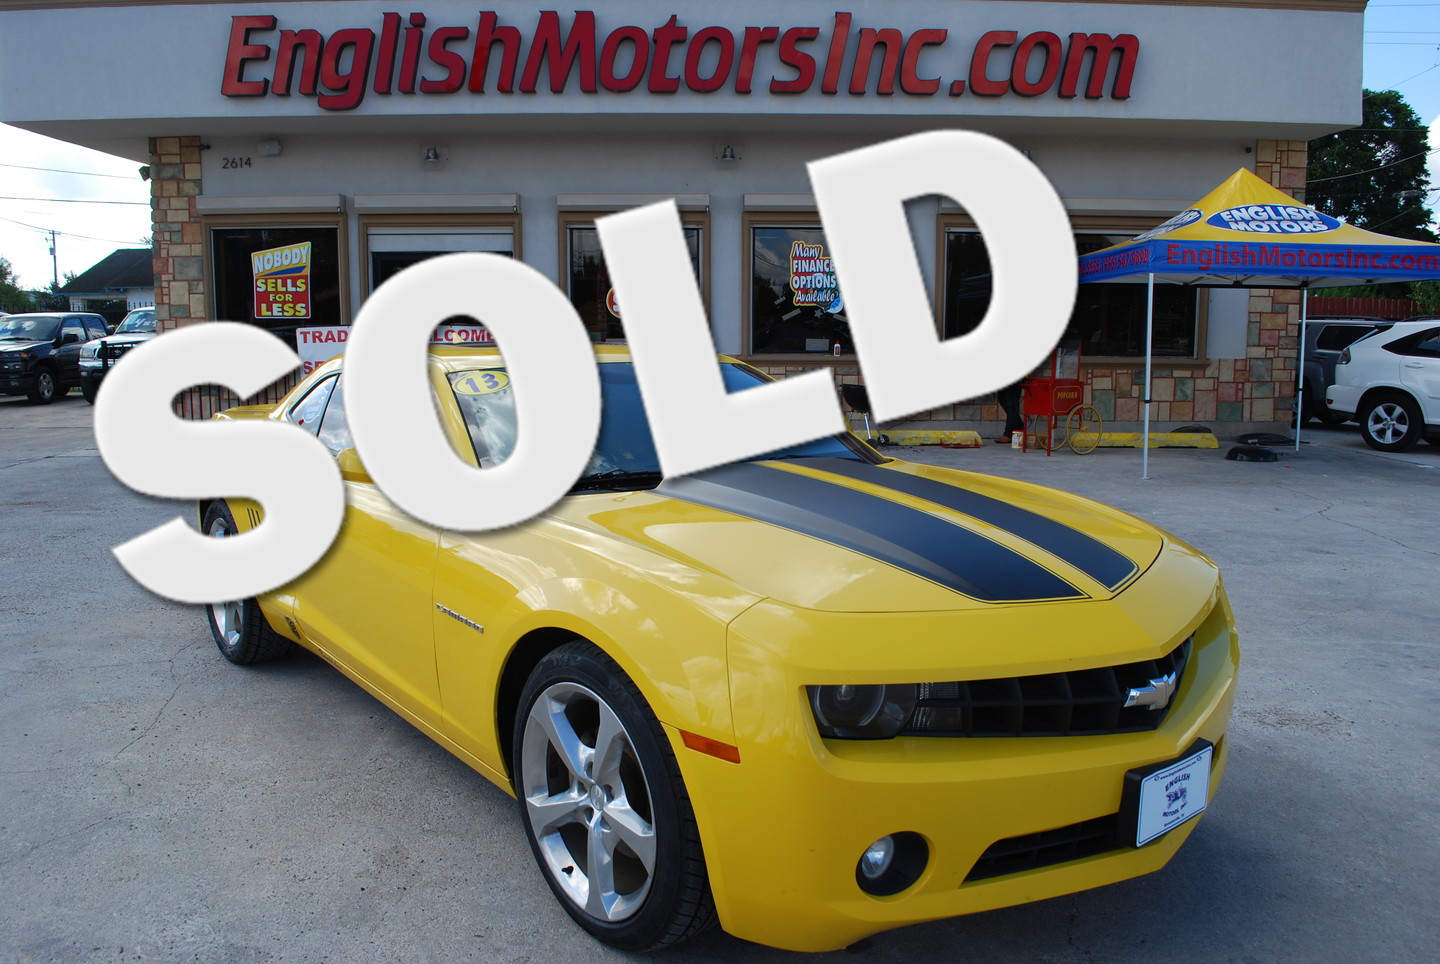 2013 chevrolet camaro lt brownsville tx english motors English motors inc